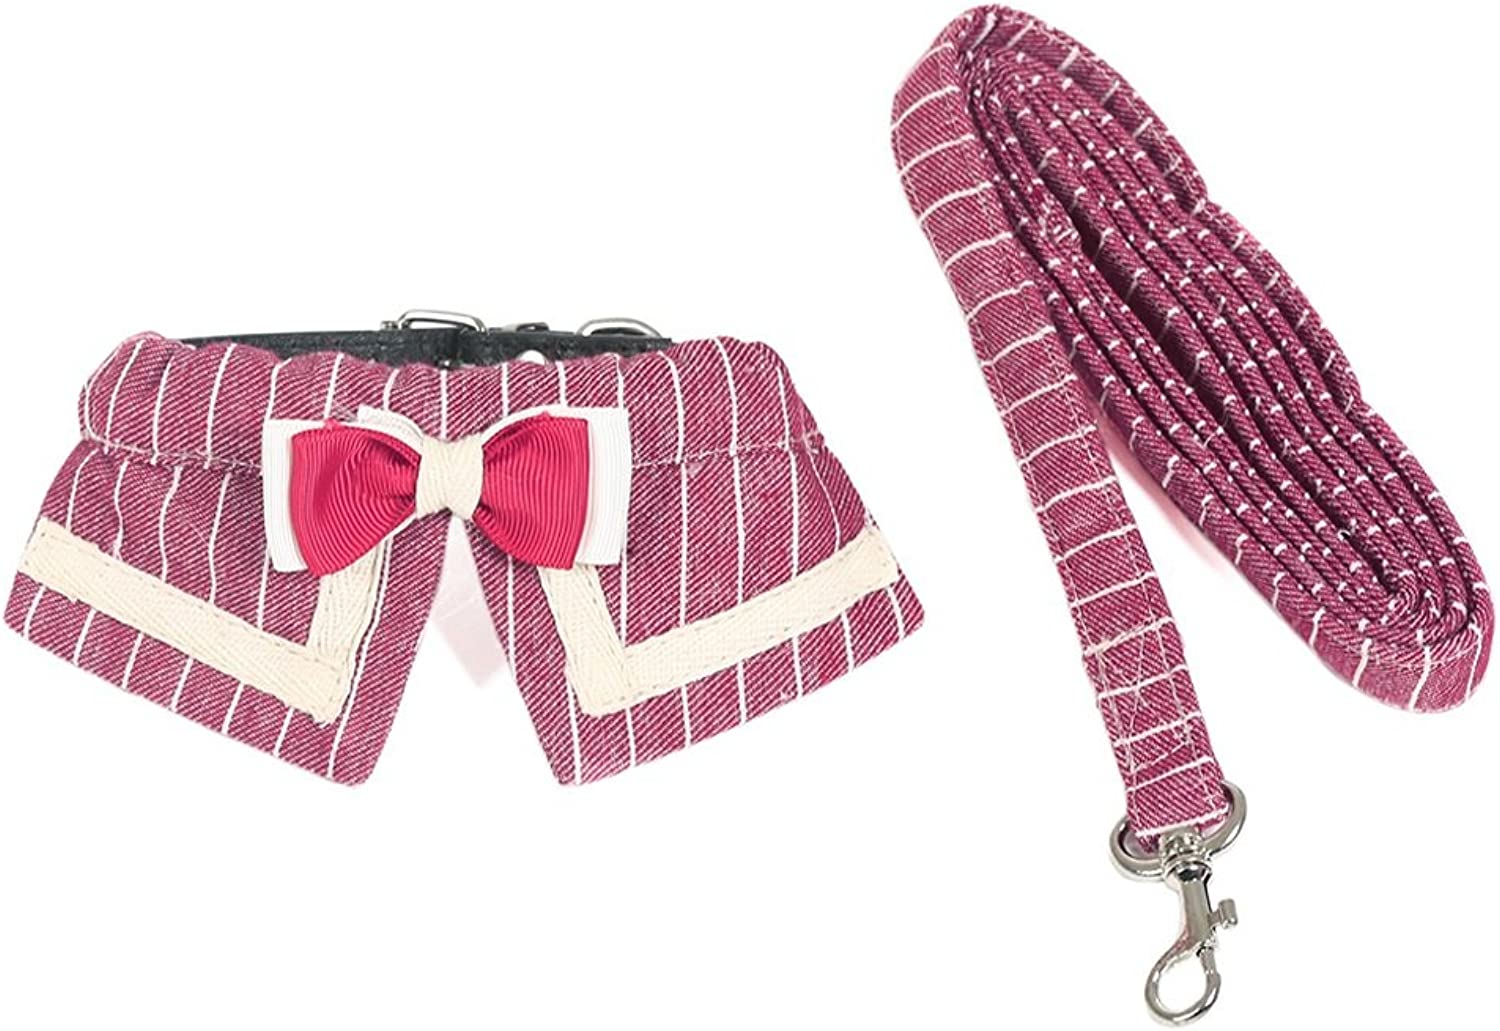 Puppy, Kitten, Girdle, Leash, Dog Chain, Collar, Small Dog, Teddy, Hyena Rope, Cat, Pet Supplies (color   RED, Size   S)